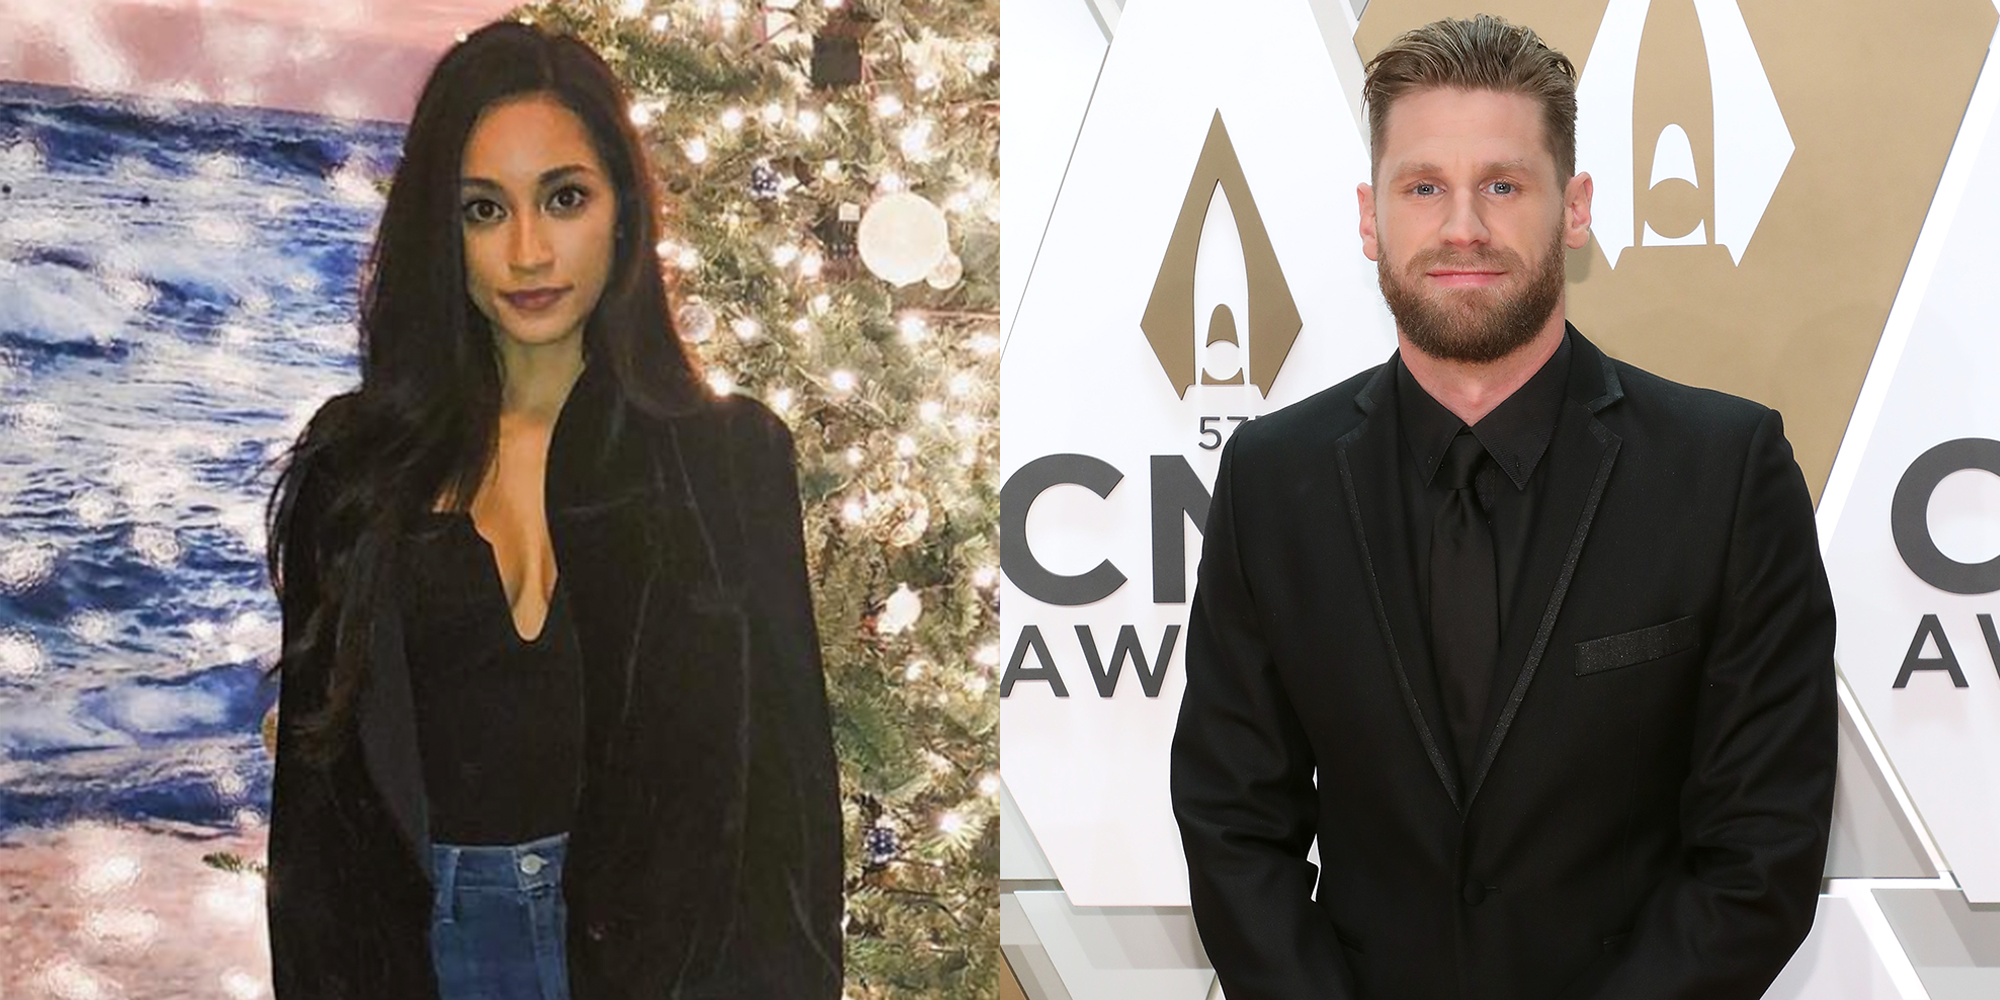 'Bachelor' Contestant Victoria Fuller And Country Singer Chase Rice, Explained